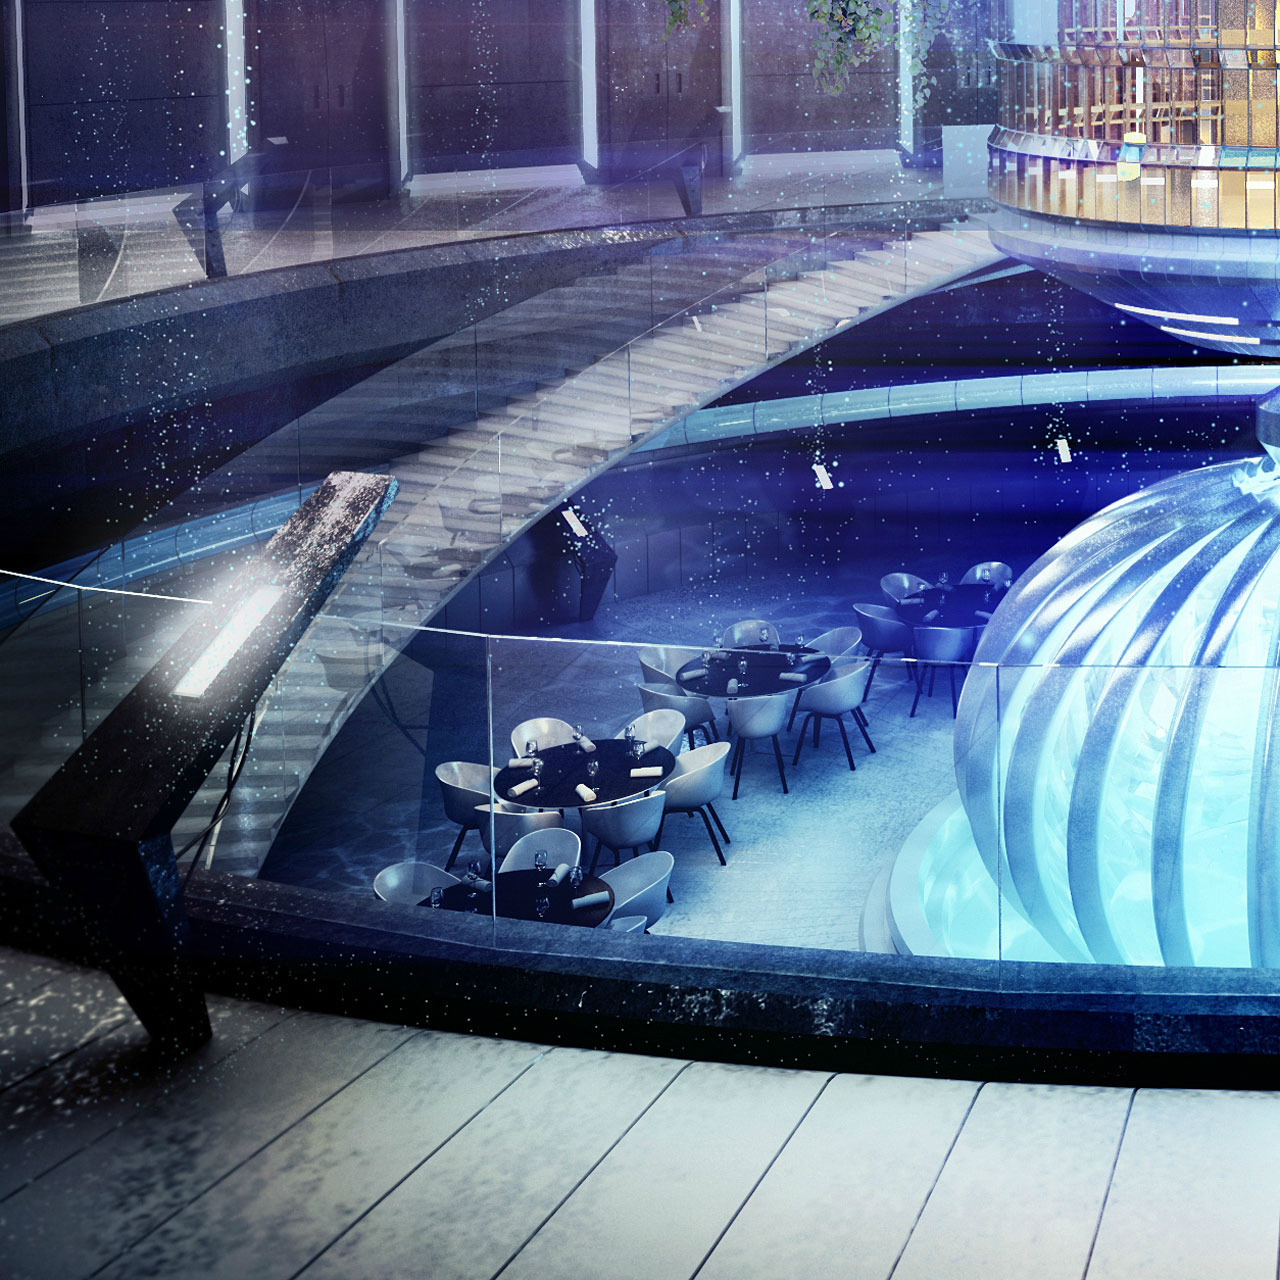 The Water Discus Underwater Hotel planned for Dubai (8)